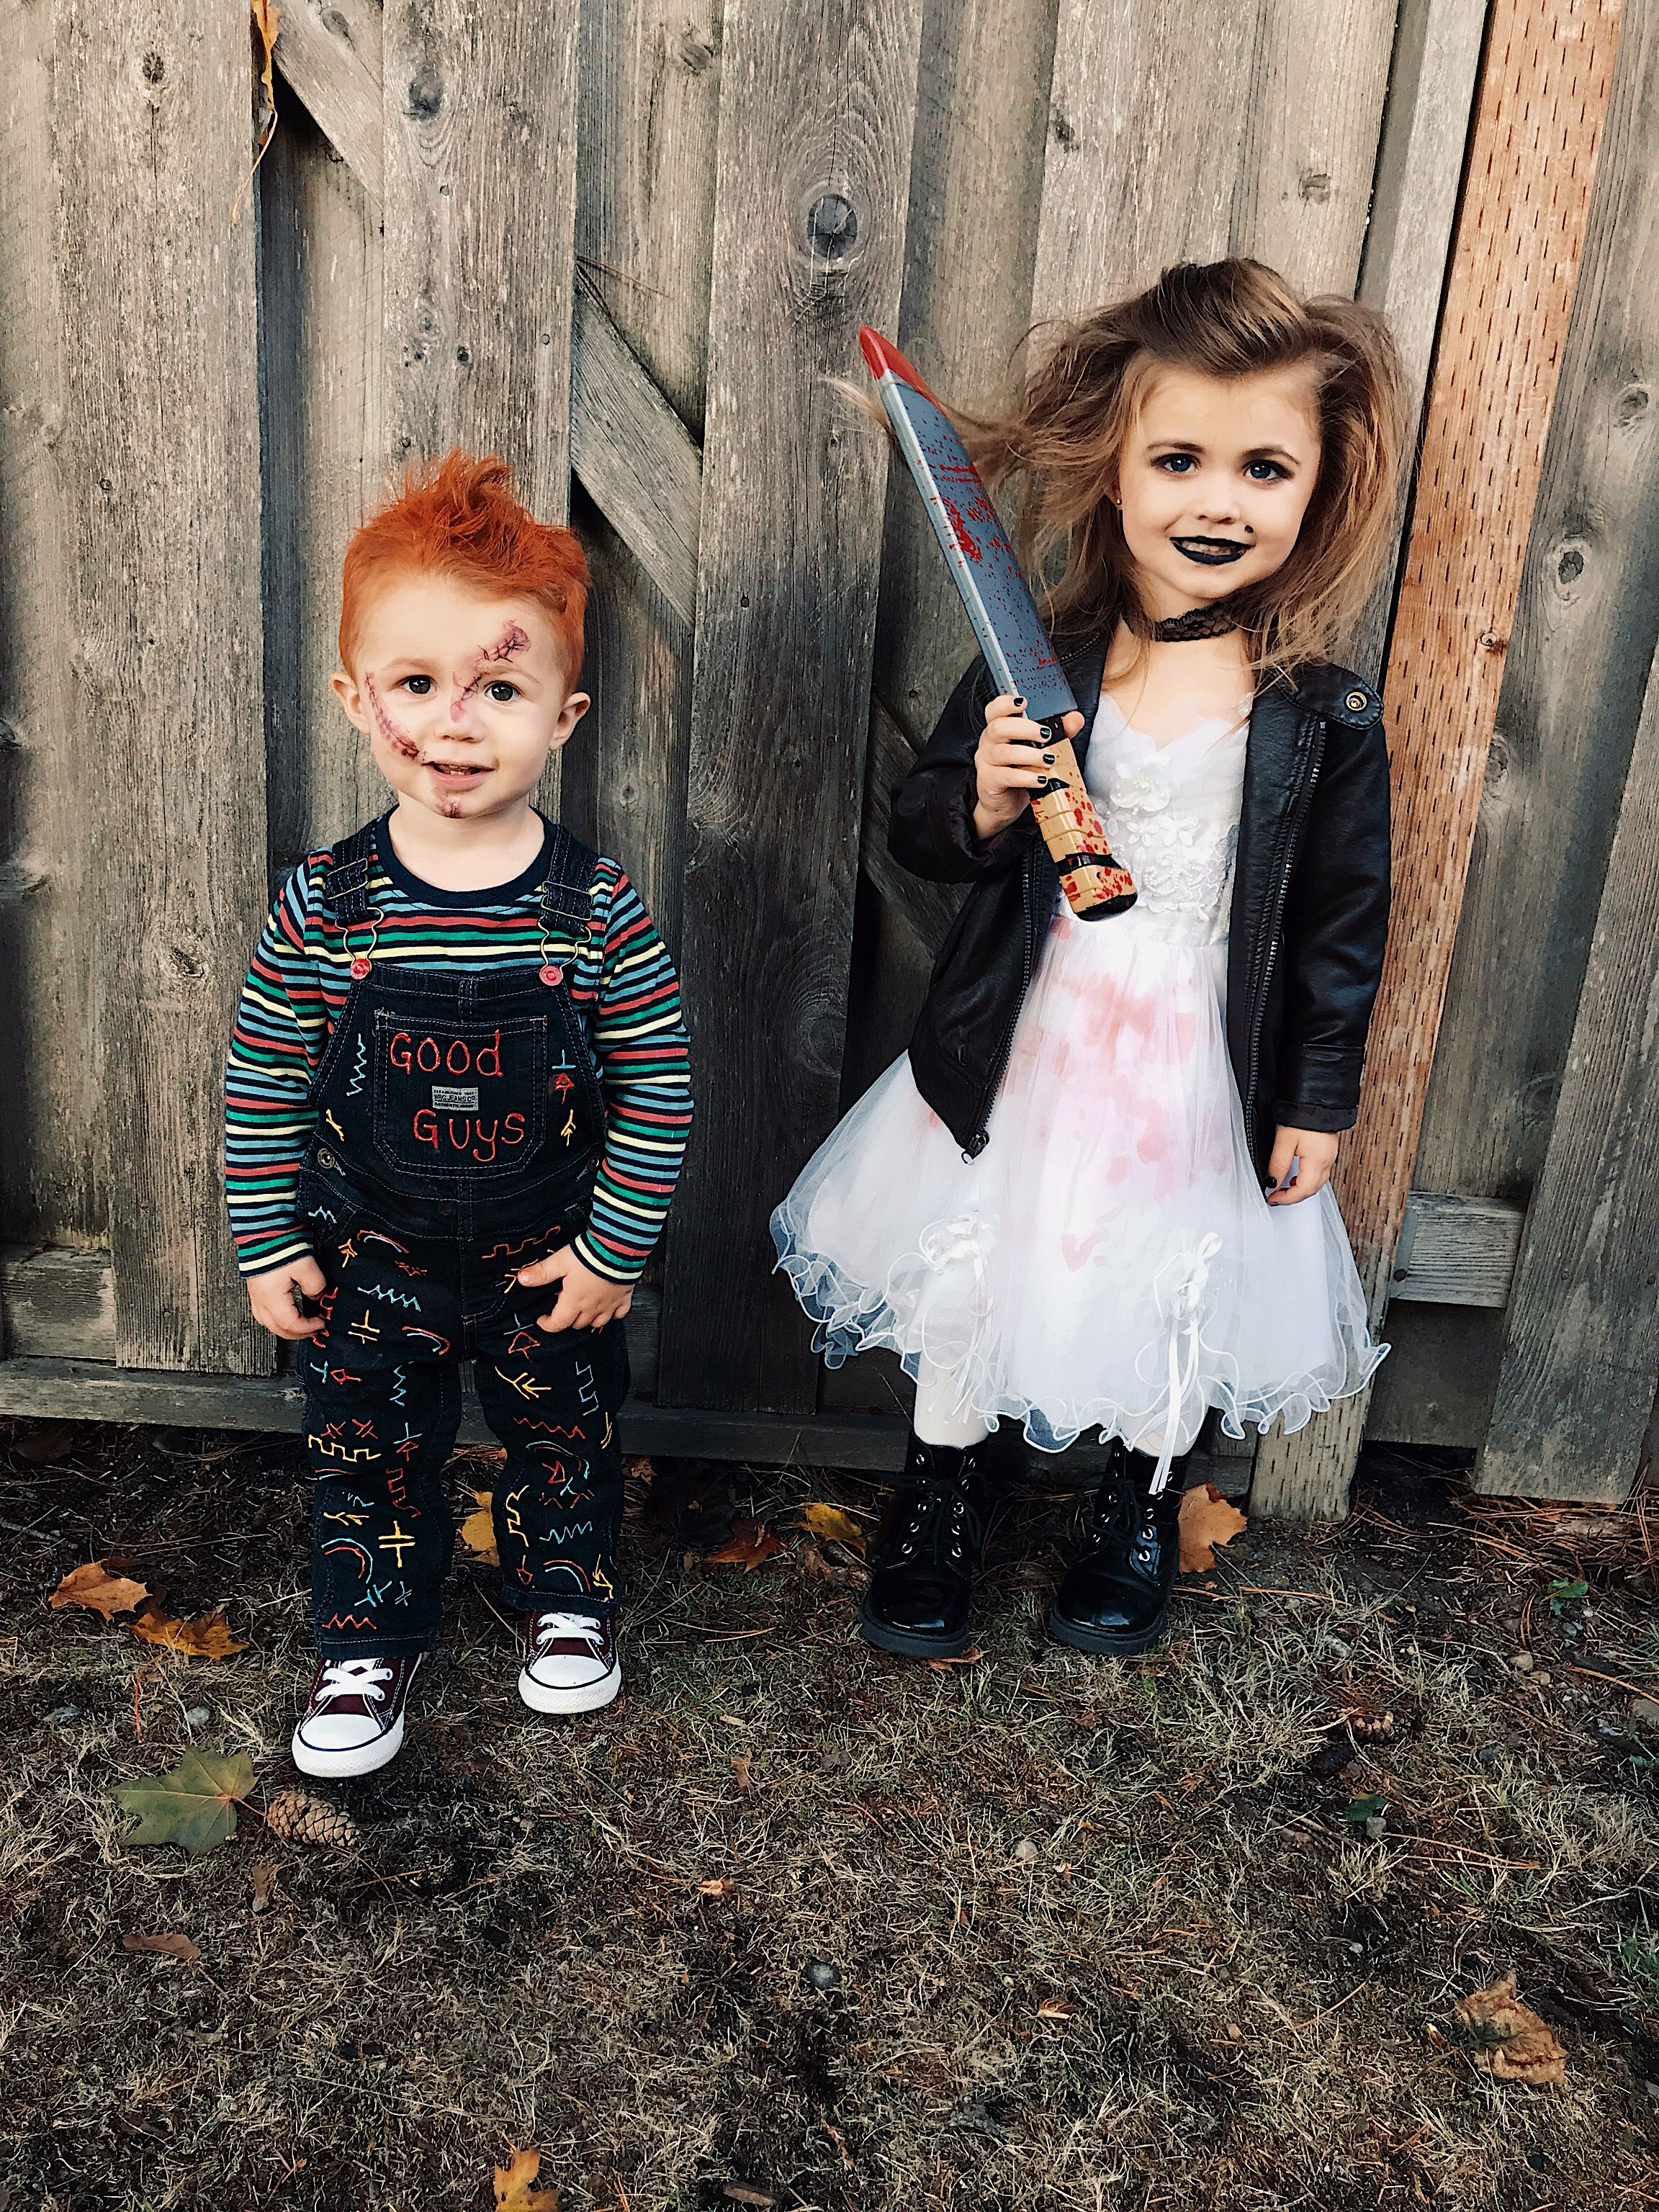 Chucky and his bride, sibling costumes, toddler duo